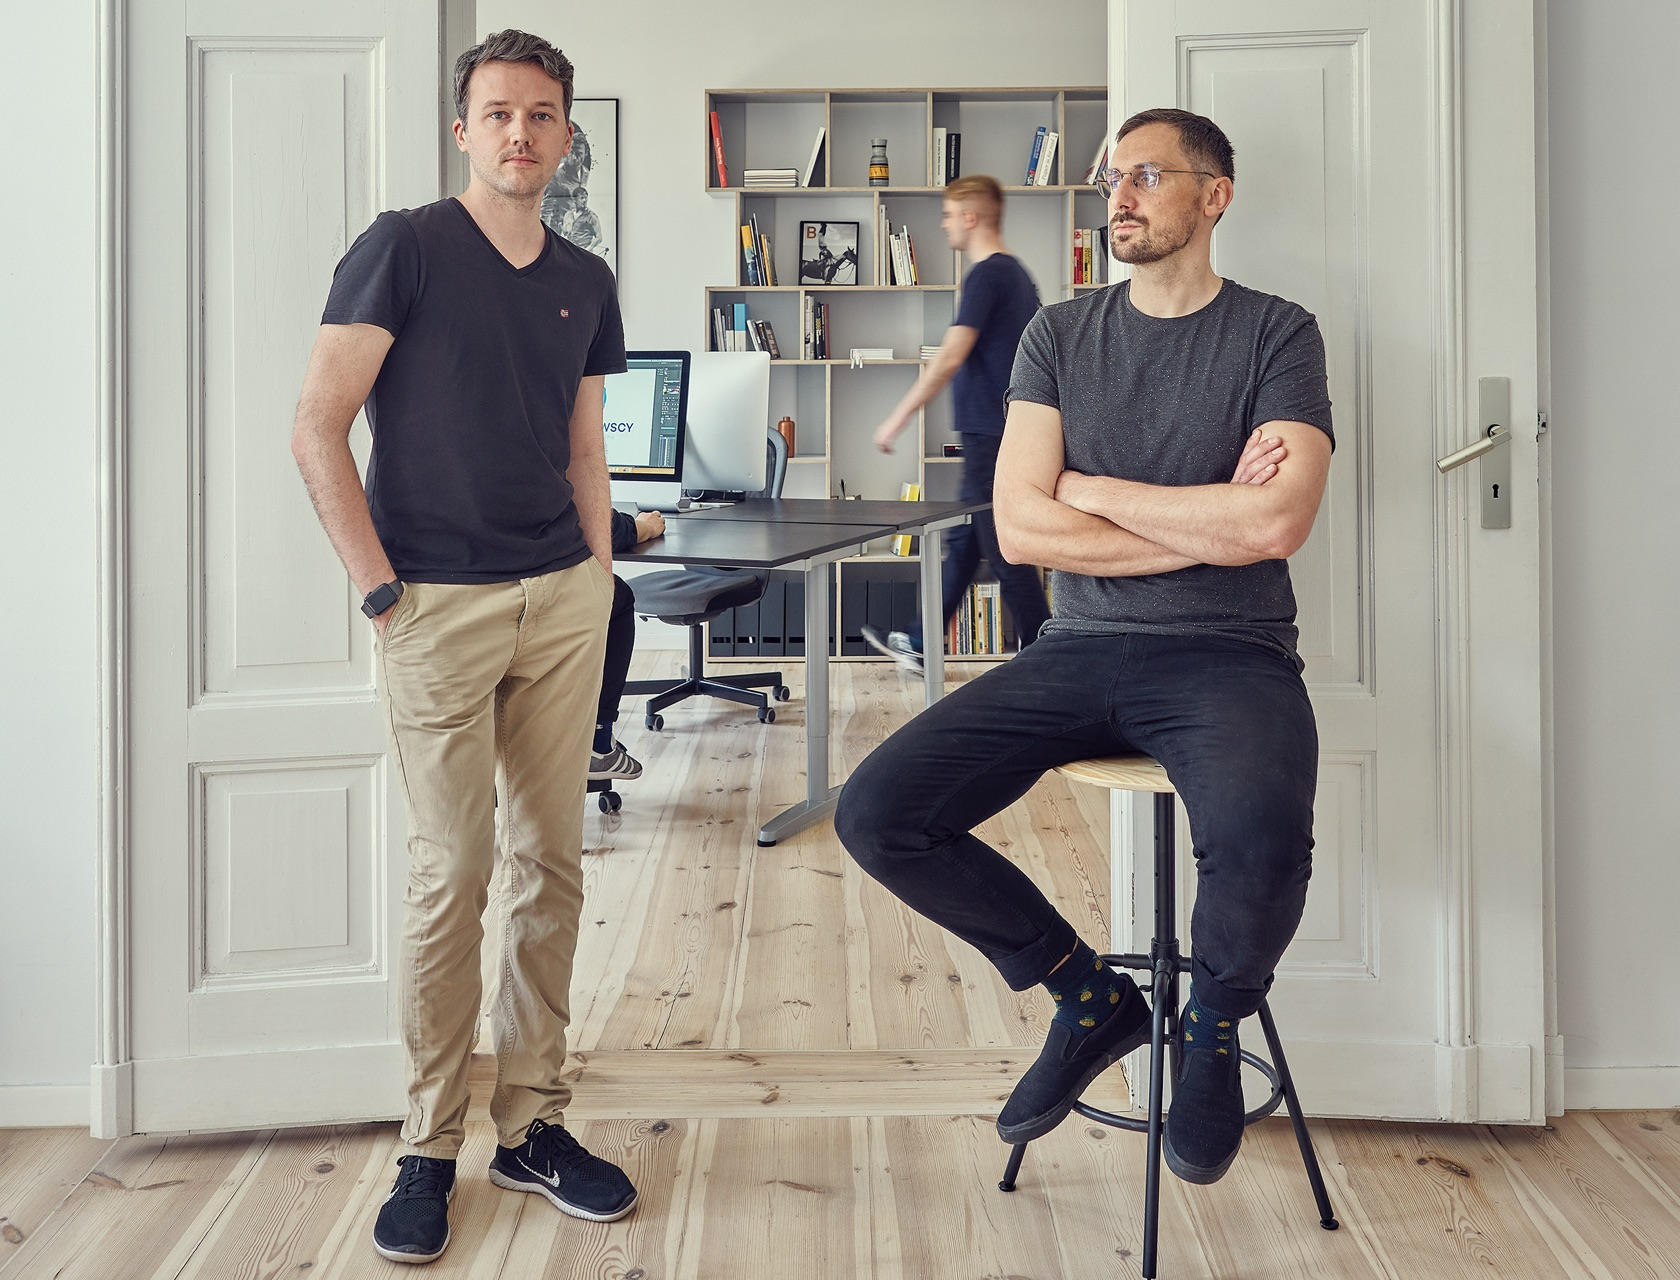 Maciej Mach and Michał Mierzwa - Owners of Uniforma Studio